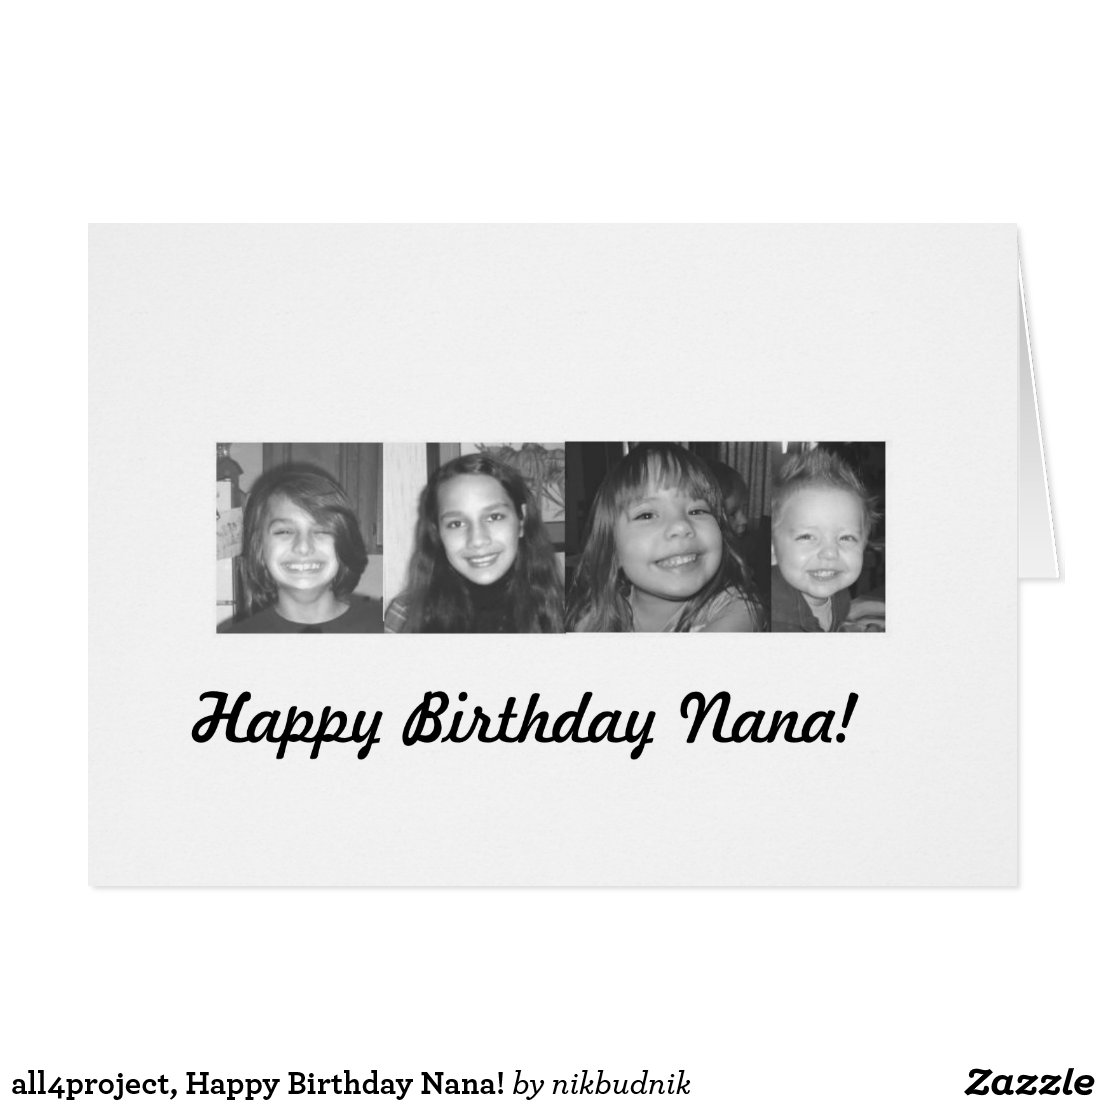 Happy Birthday Nana!